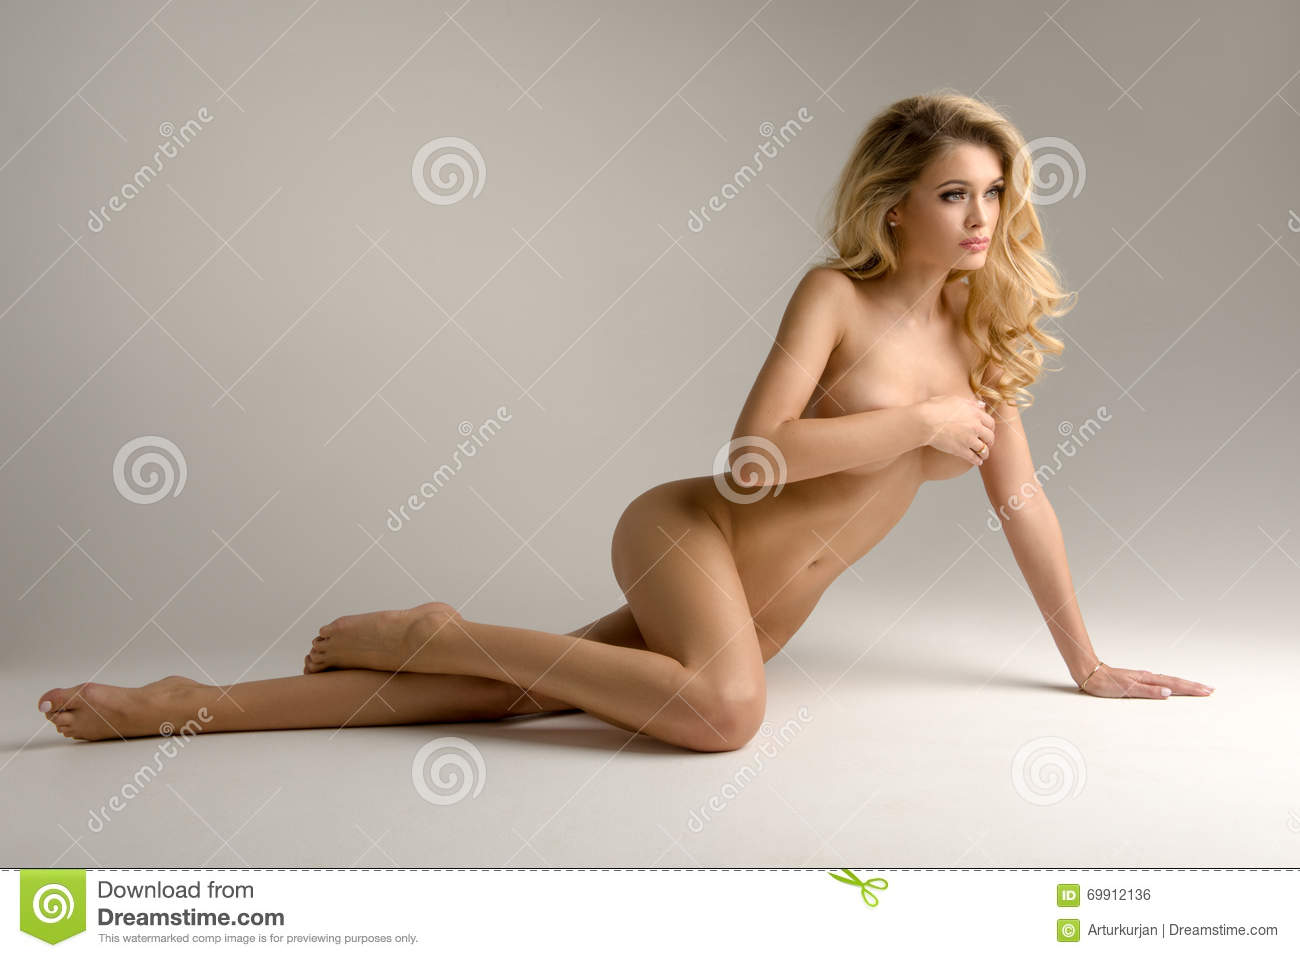 Woman naked Beautiful curvy